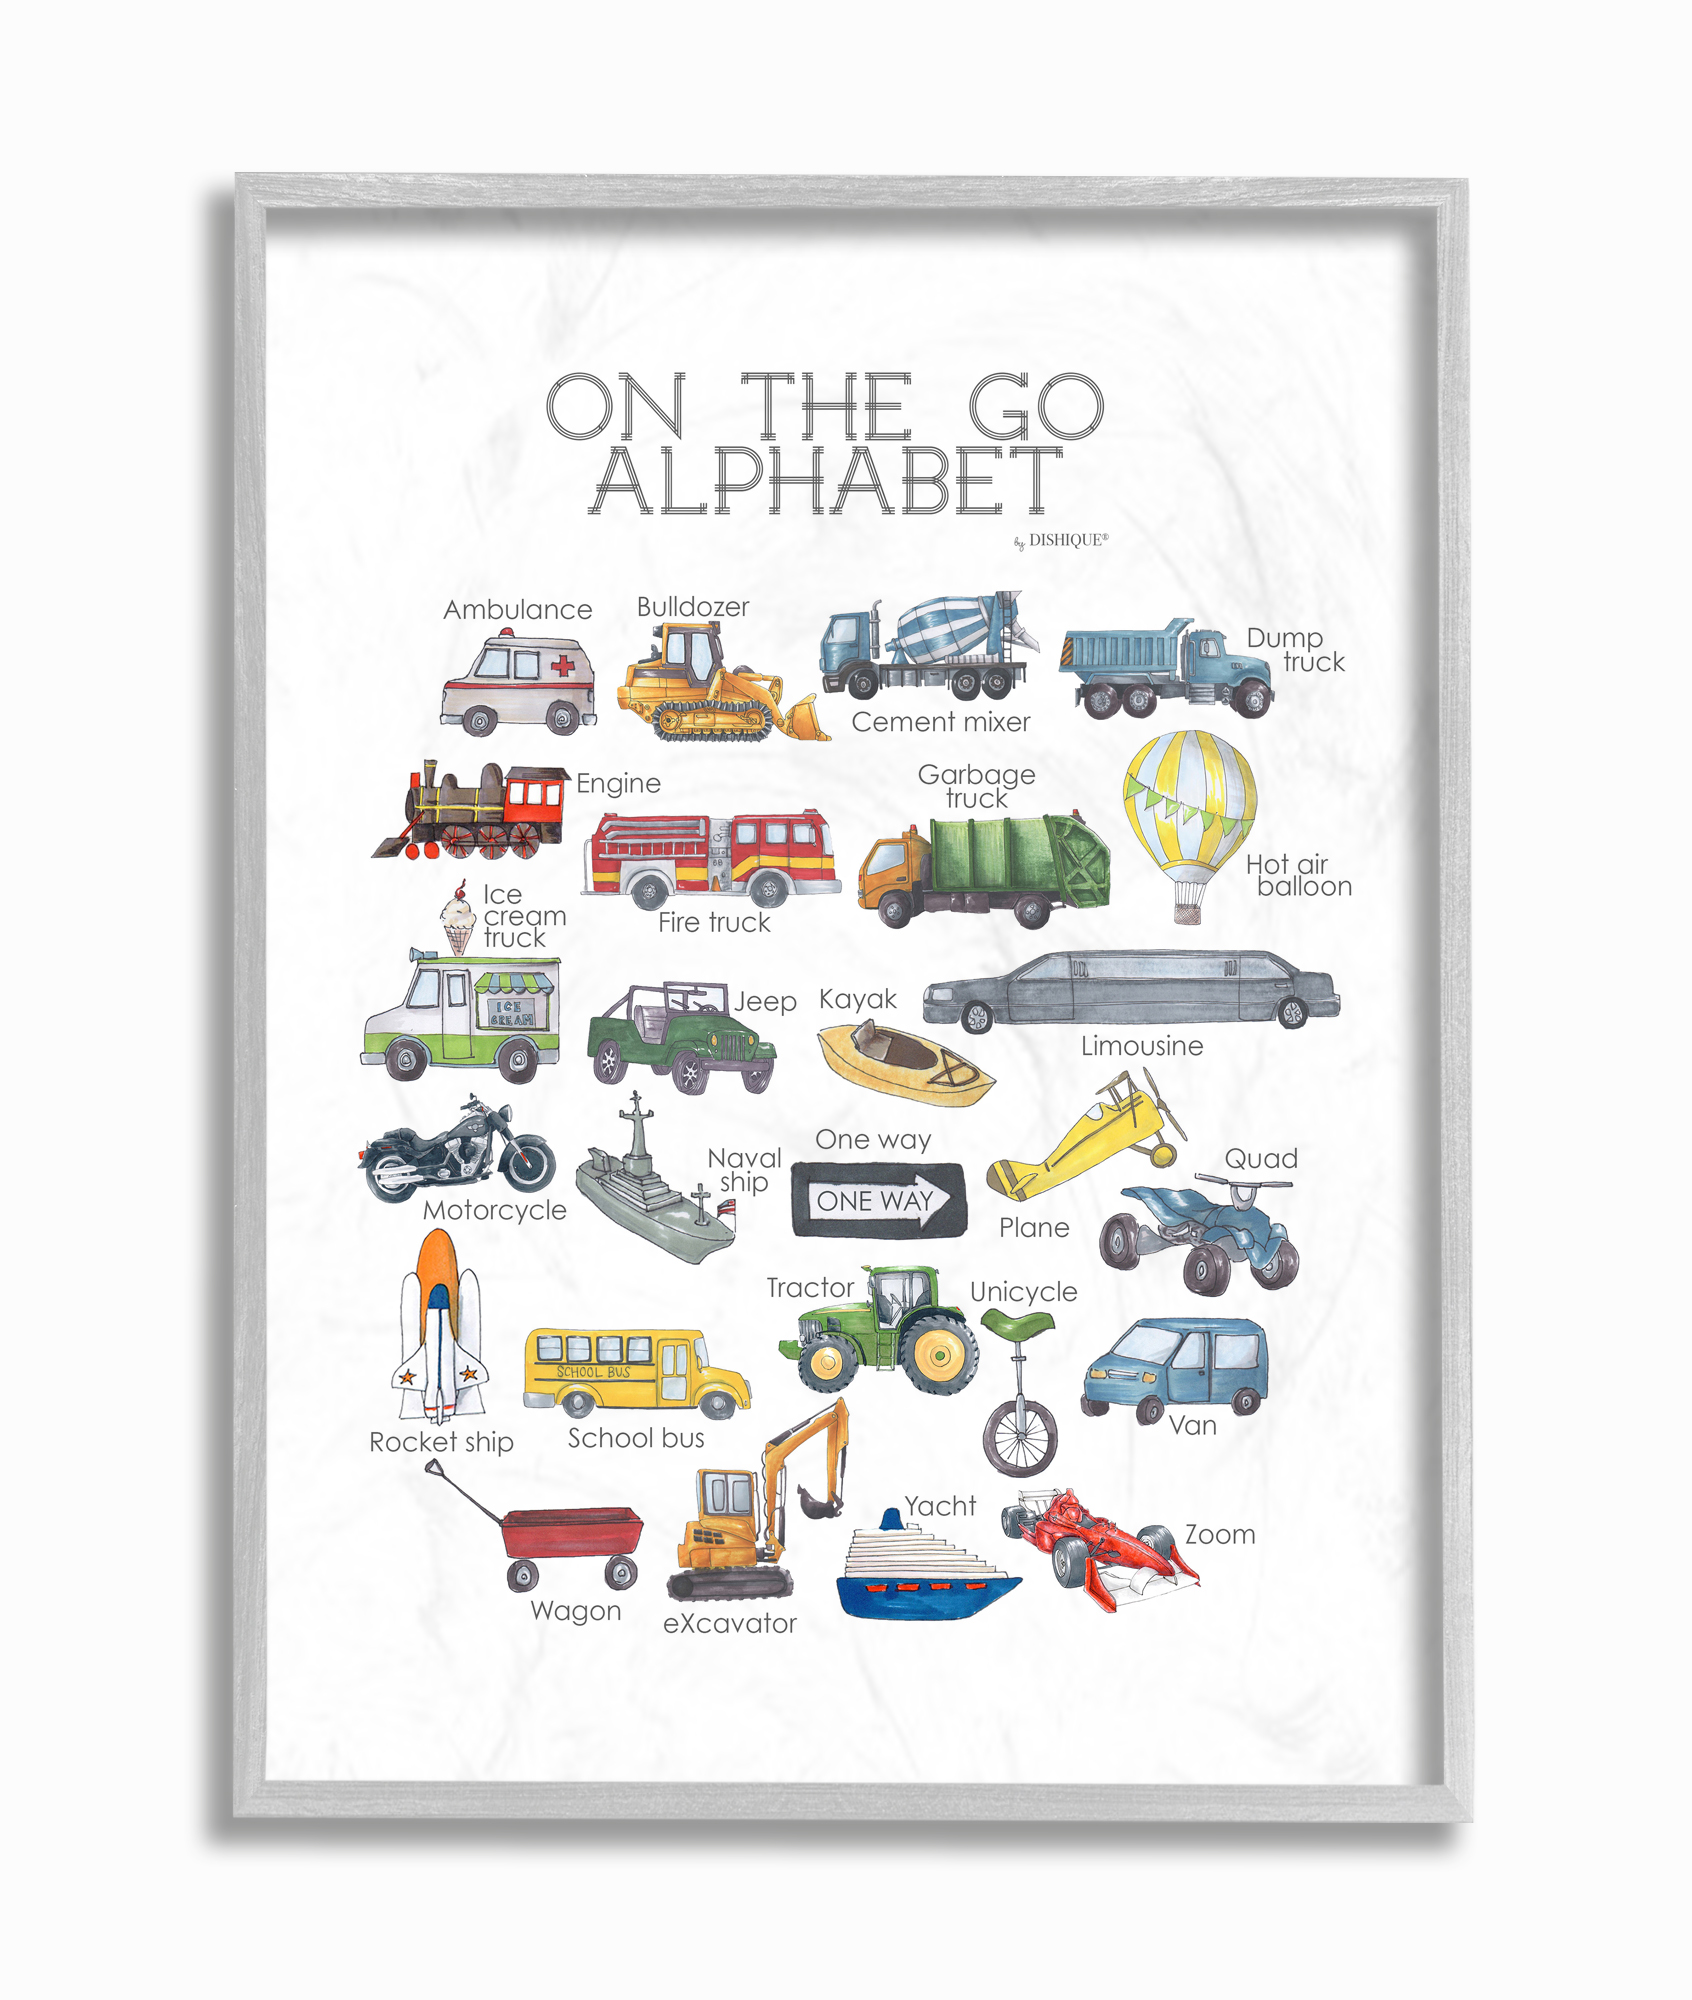 The Kids Room By Stupell Watercolor On The Go Transportation Alphabet With Firetruck Airplane And School Bus Wall Plaque Art Walmart Com Walmart Com